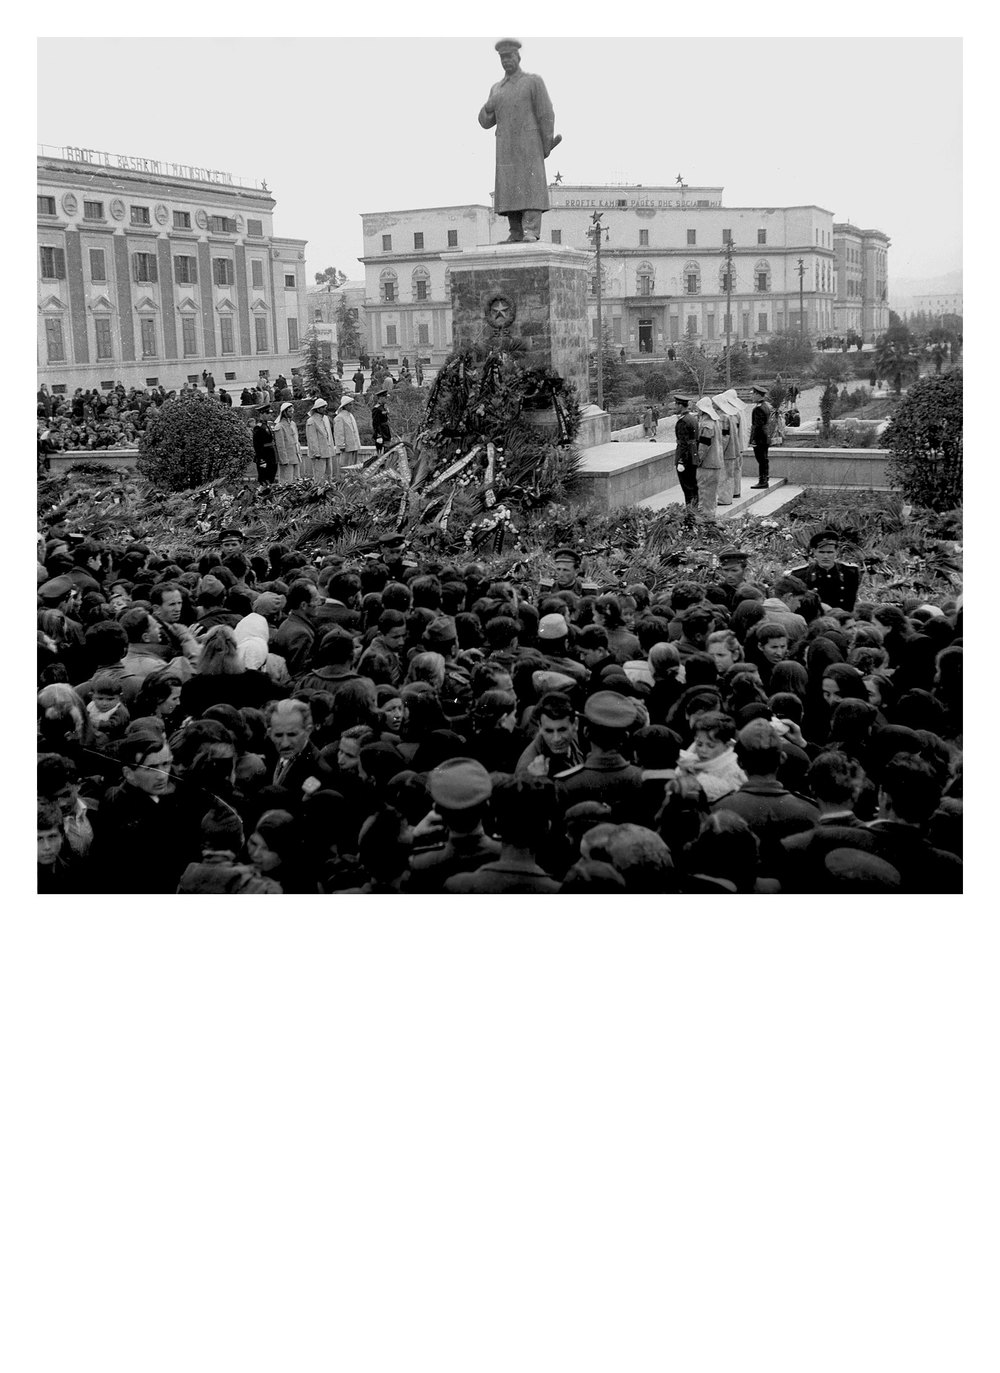 Commemoration of Stalin's death, Tiranë, Albania, 1953, ATSH.